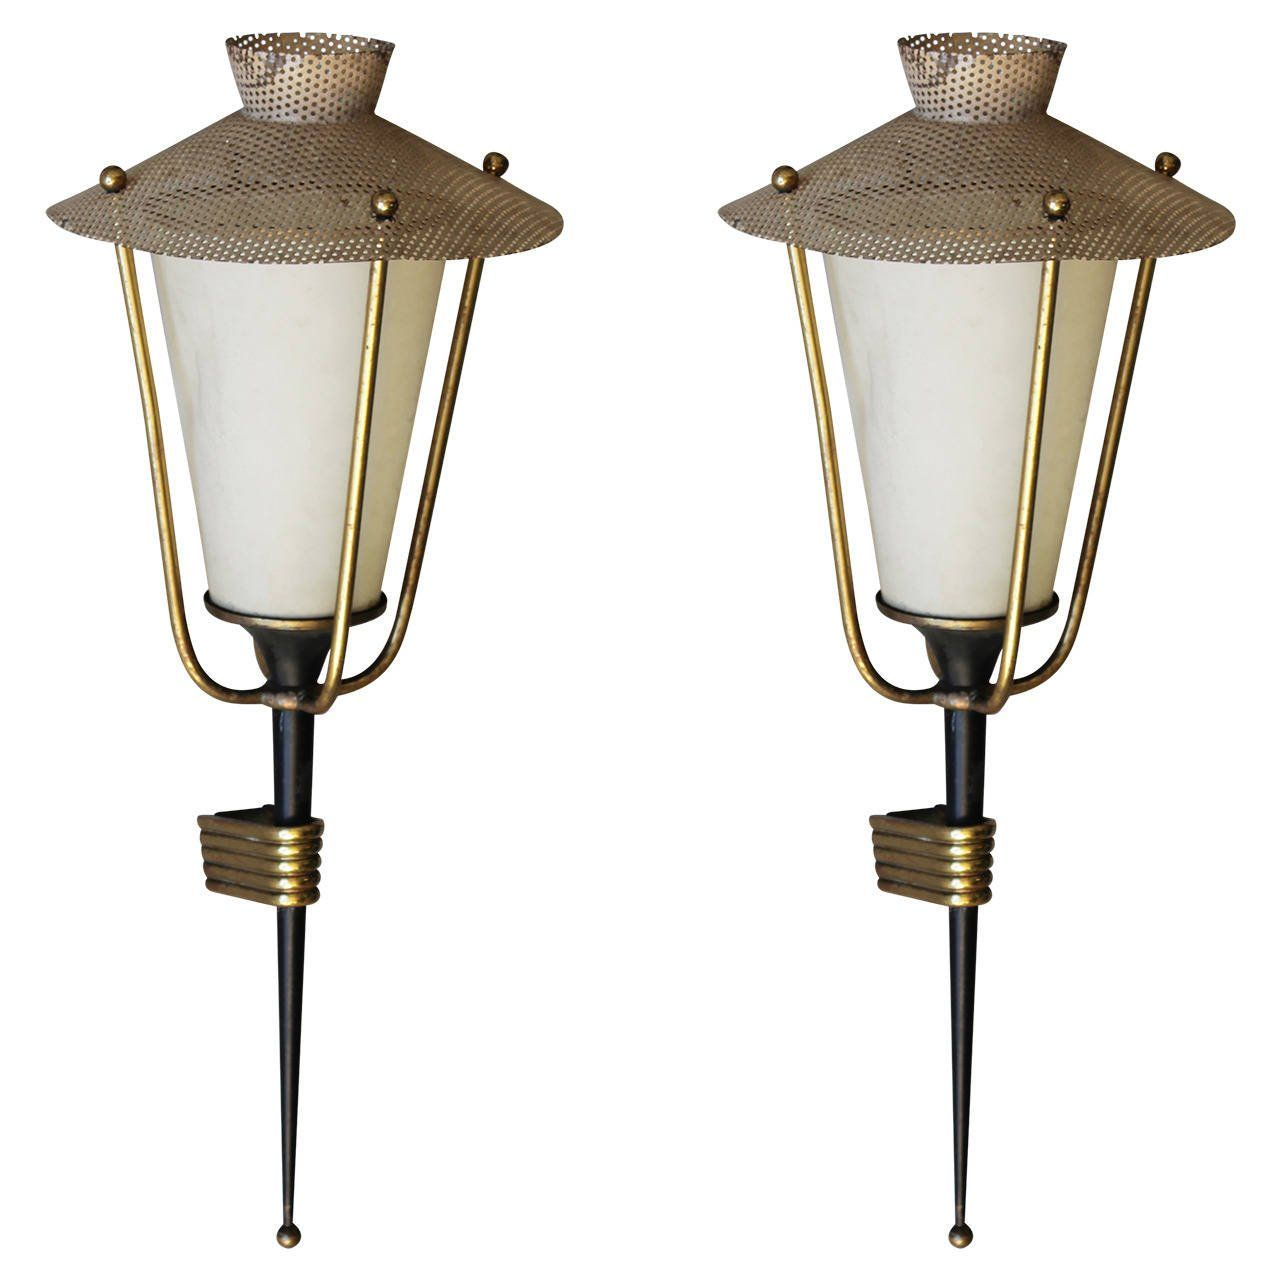 Pair Of Corner Mounted Sconces By Maison Arlus Sconces French Art Deco Wall Lights